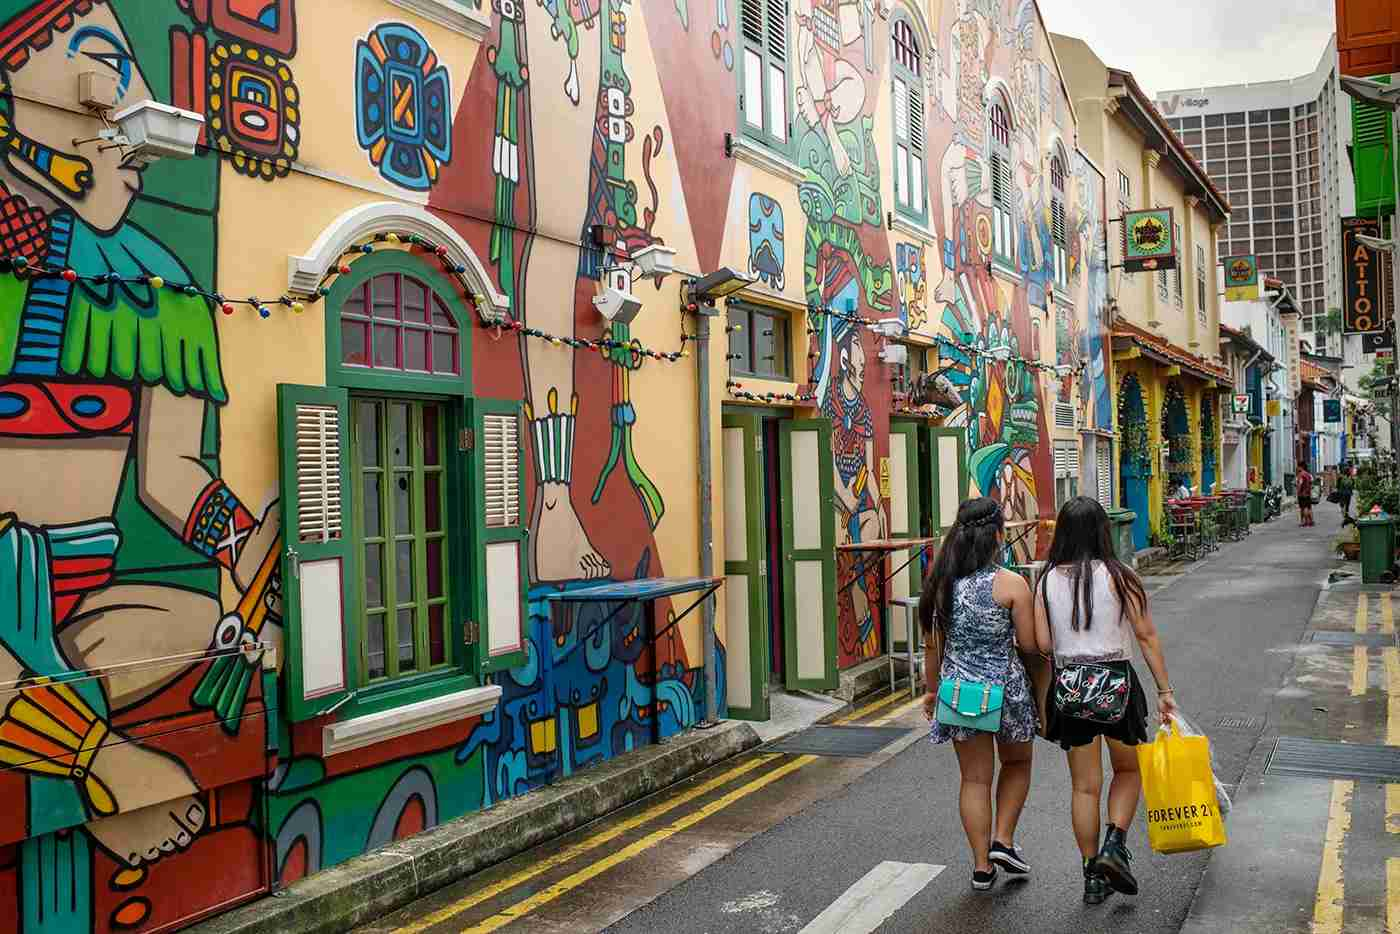 SINGAPORE - 2013/11/28: Two young women walk pass a colourful building located in a shopping and leisure district that has proper graffiti style paintings on it. (Photo by Jonas Gratzer/LightRocket via Getty Images)